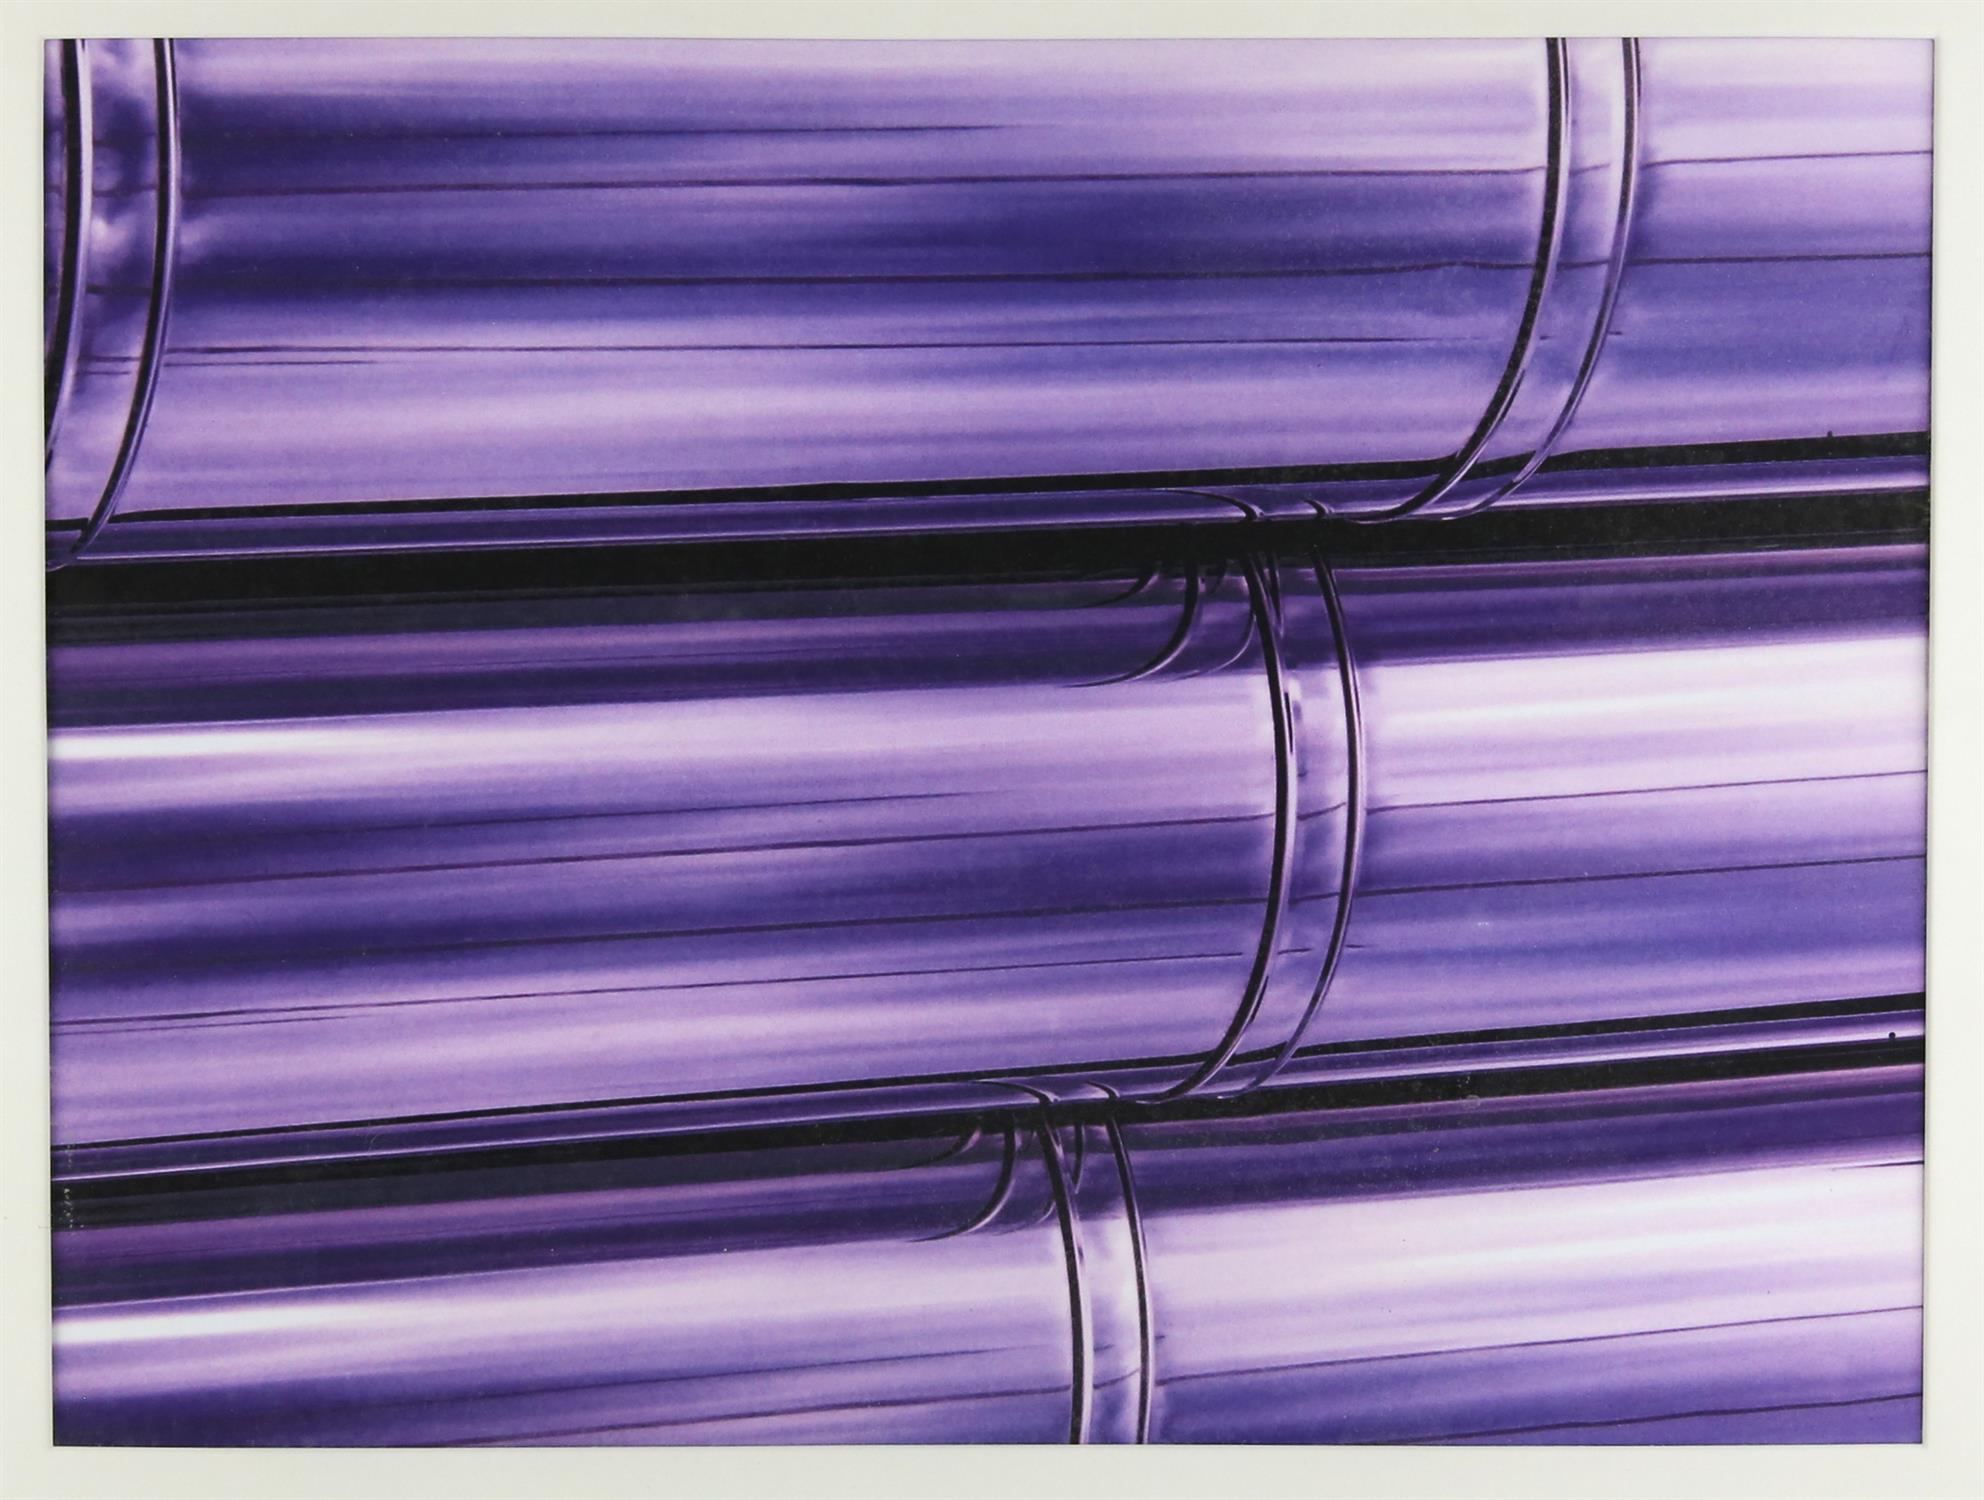 Lever, 'Chrome Stacks'. Three abstract lithographs in purple. Image size 35 x 46cm each.